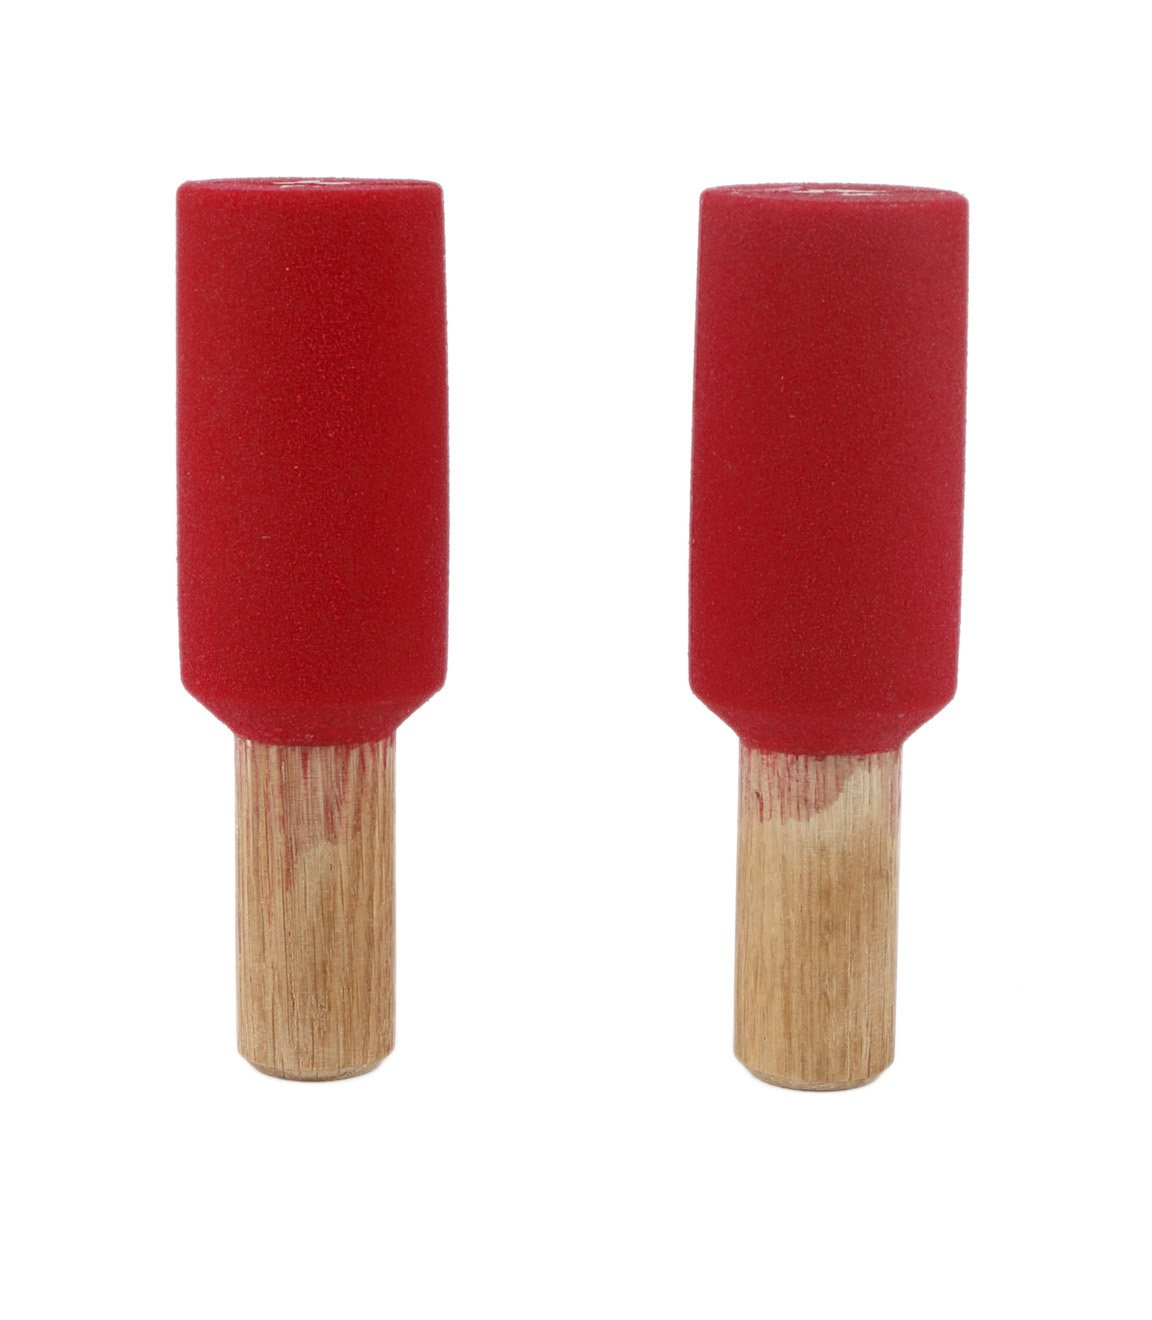 2'' Horizontal Peg Board Pipes (Set Of 2)   Climbing Holds   Red